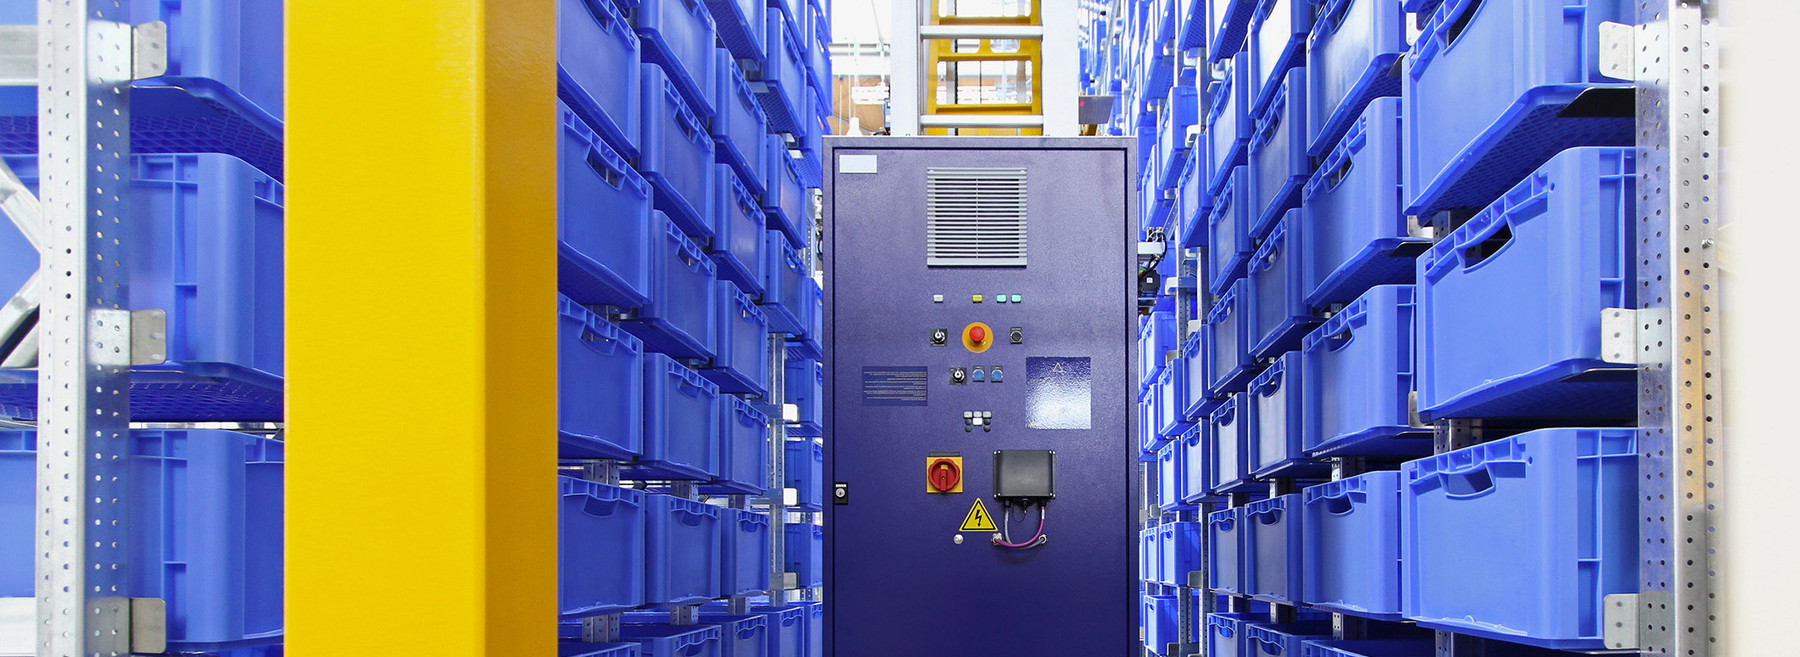 The cover picture shows blue boxes in an automated small parts warehouse, which is controlled by the warehouse management system LFS.wms.